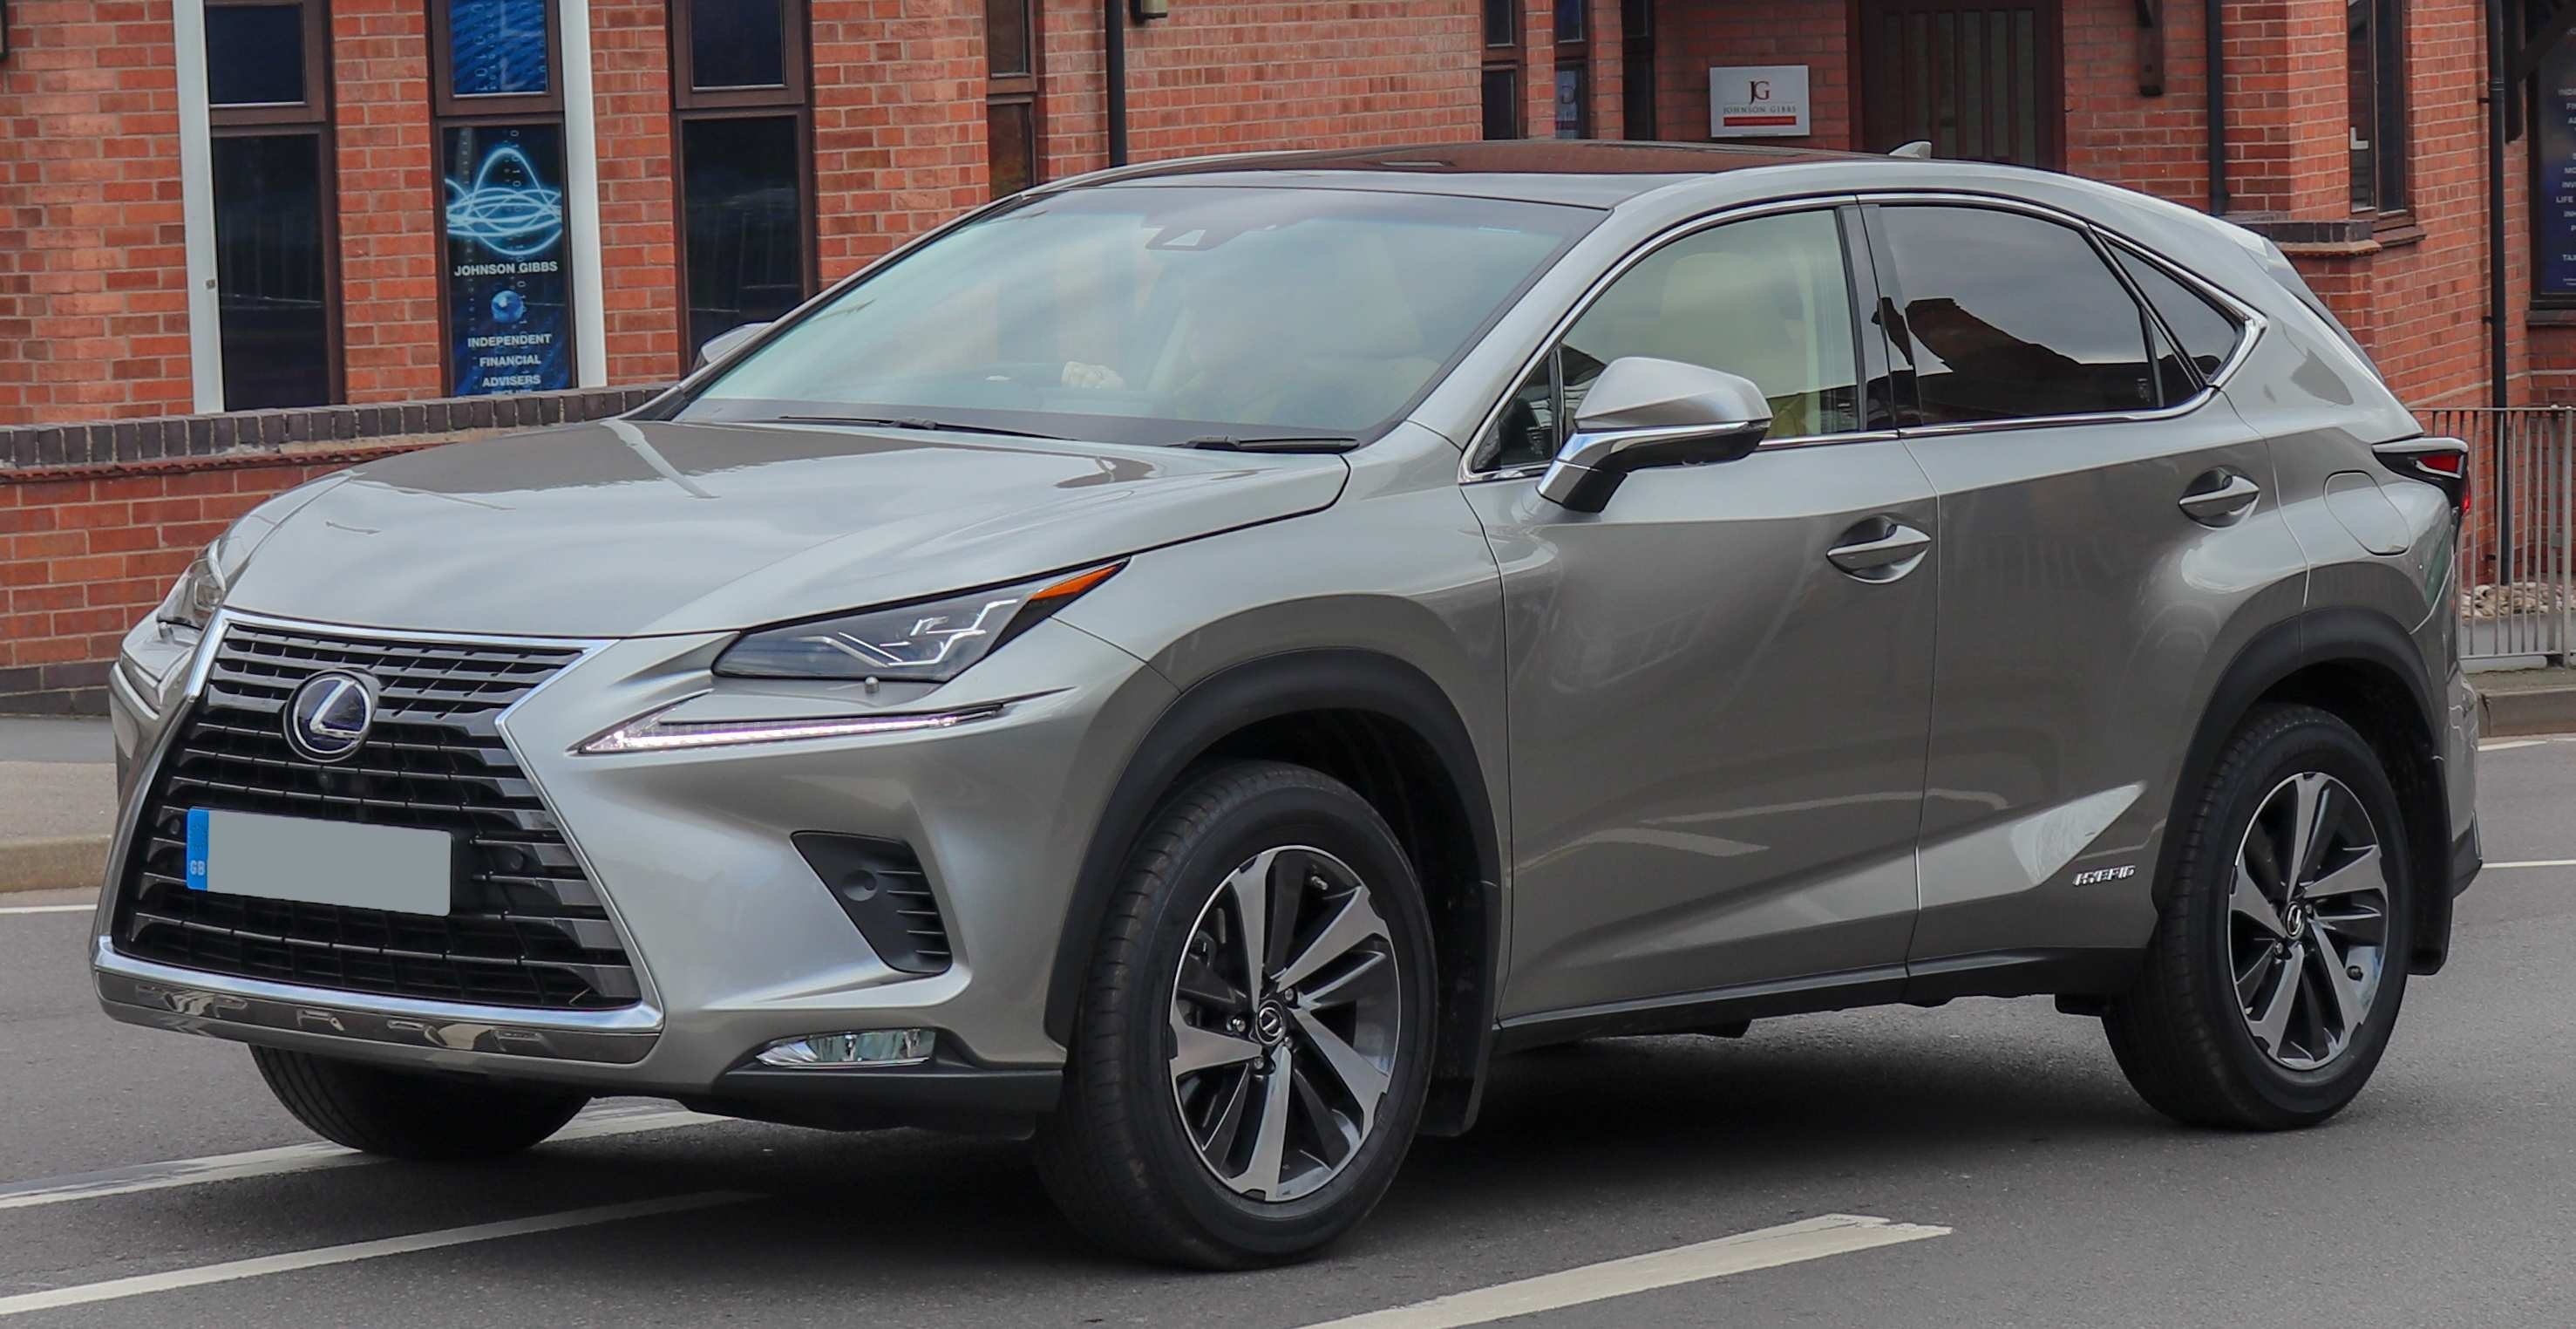 94 New When Lexus 2019 Come Out Prices